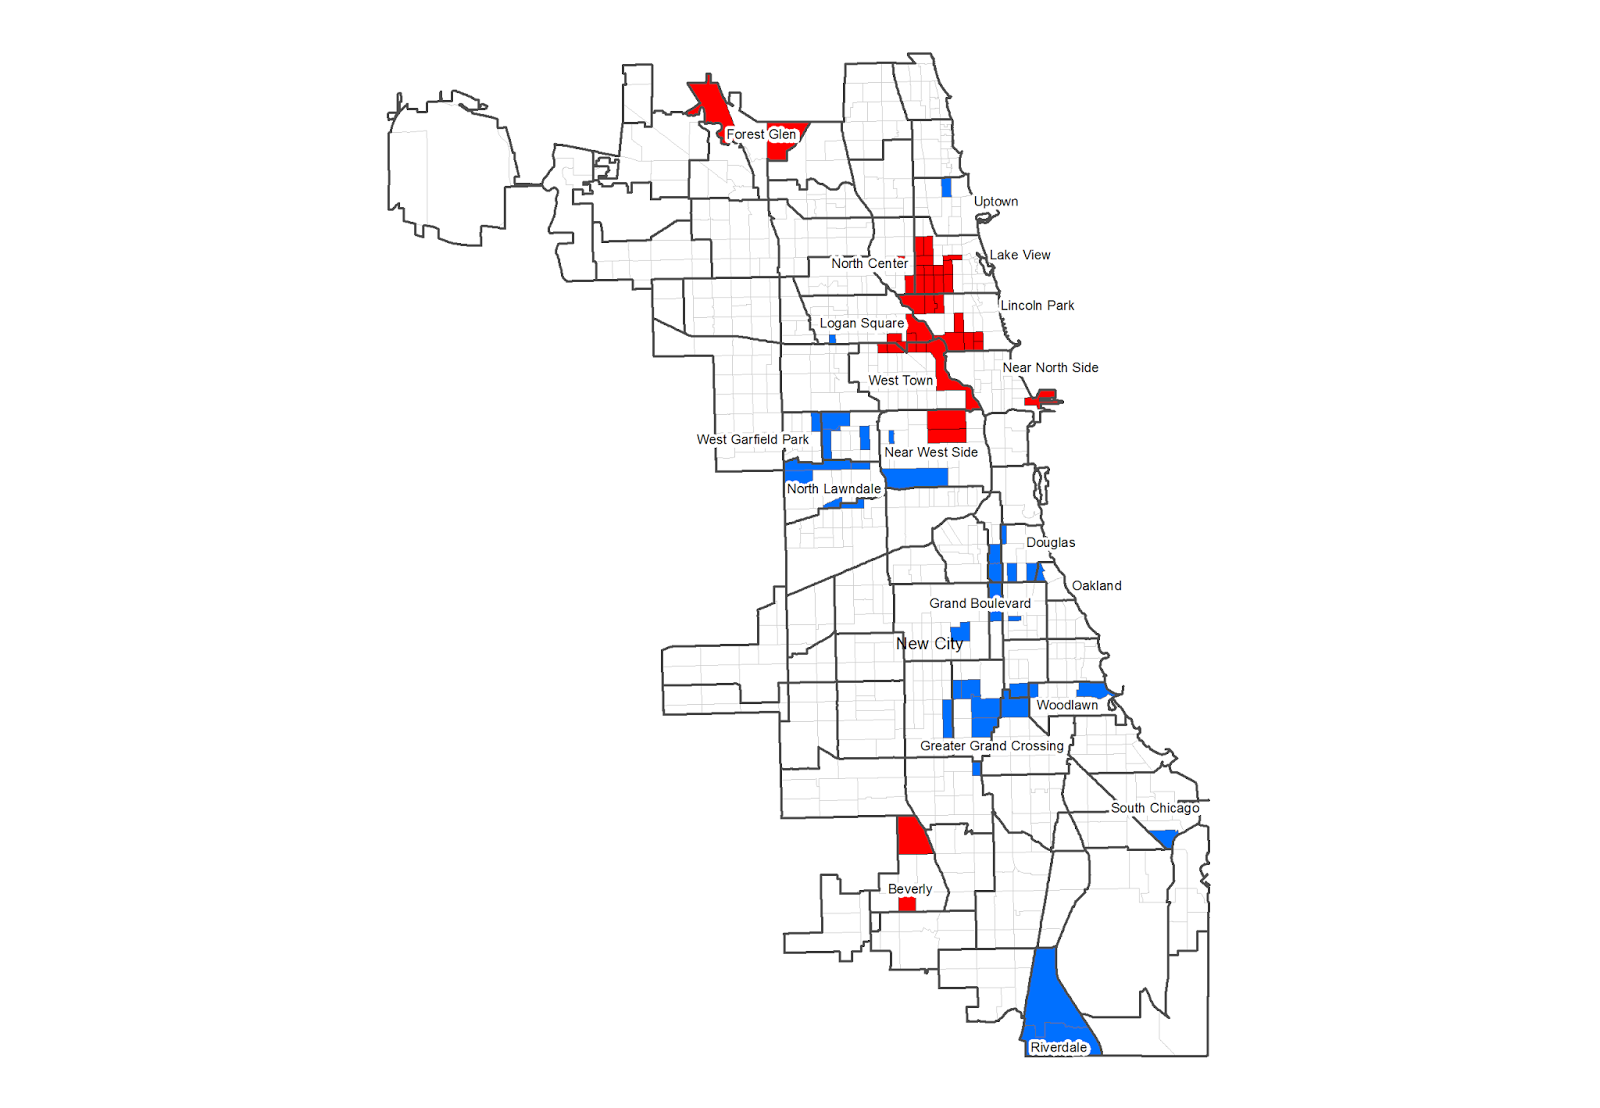 so who s in a ghetto the cheek to jowl upper money areas are much more compact than the poorest neighborhoods in blue representing 35 census tracts with